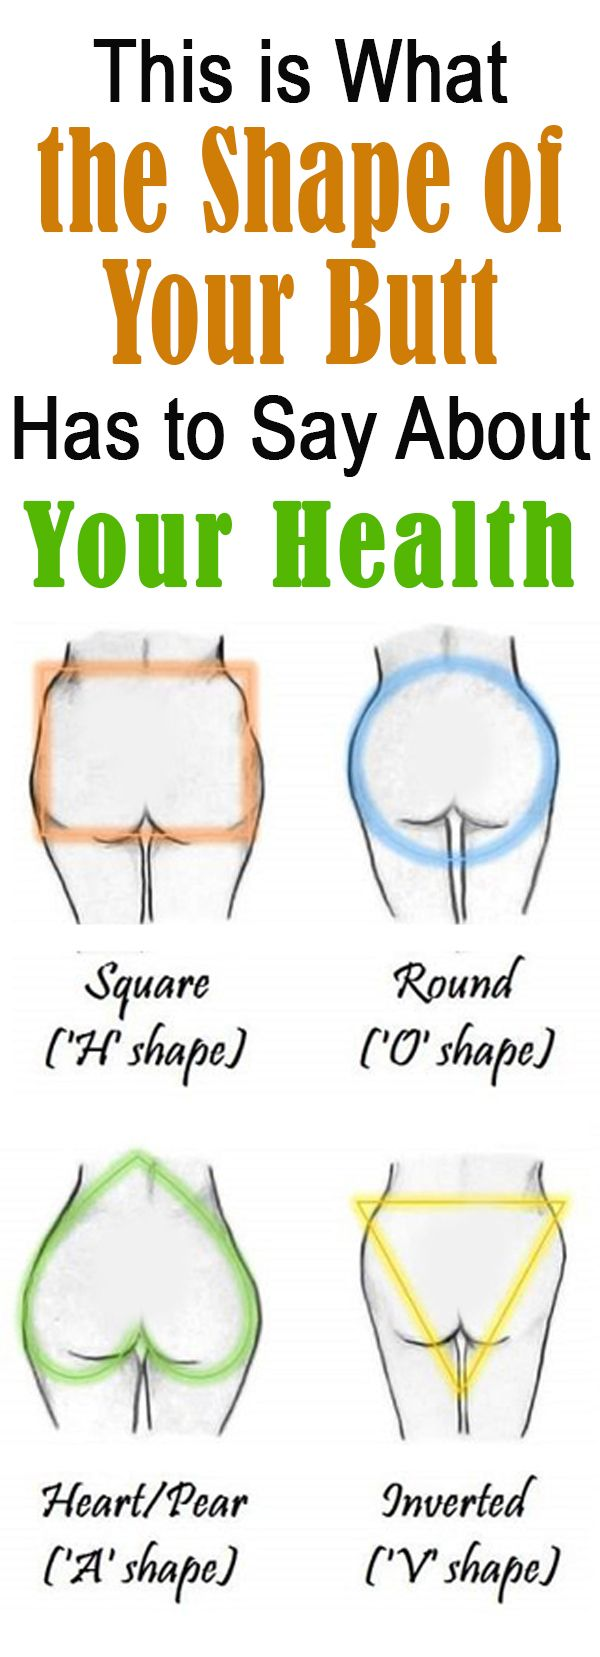 This is What the Shape of Your Butt Has to Say About Your Health | Interesting | Healthy Eon #shapes #shapeofyourbutt #booty #yourhealth